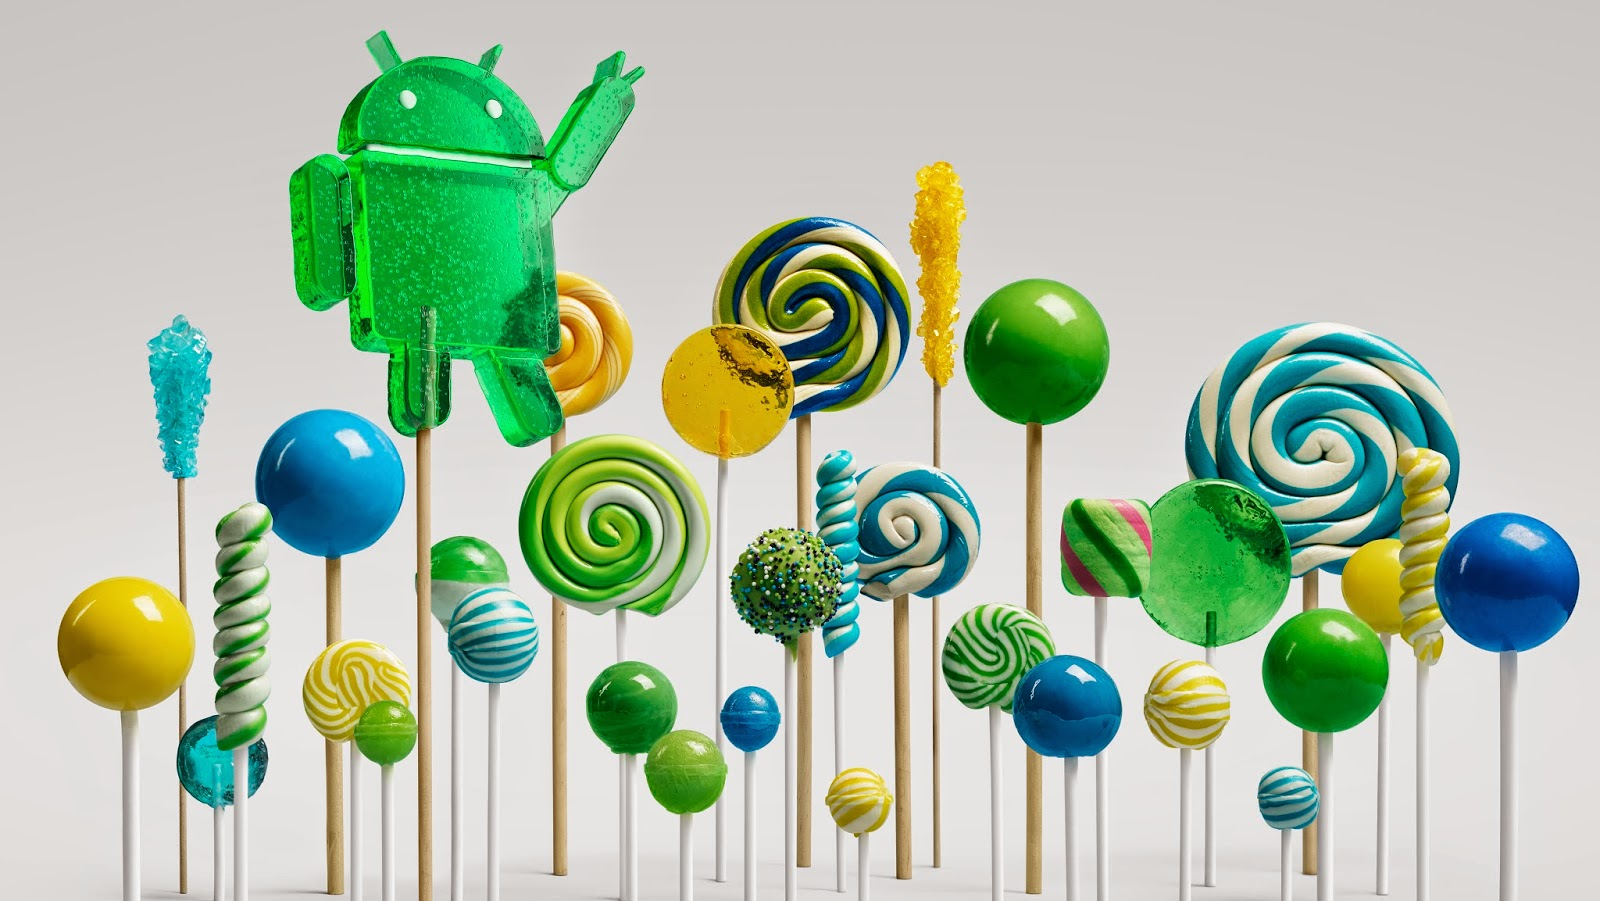 Android android 5.1 galaxy lollipop Samsung Update